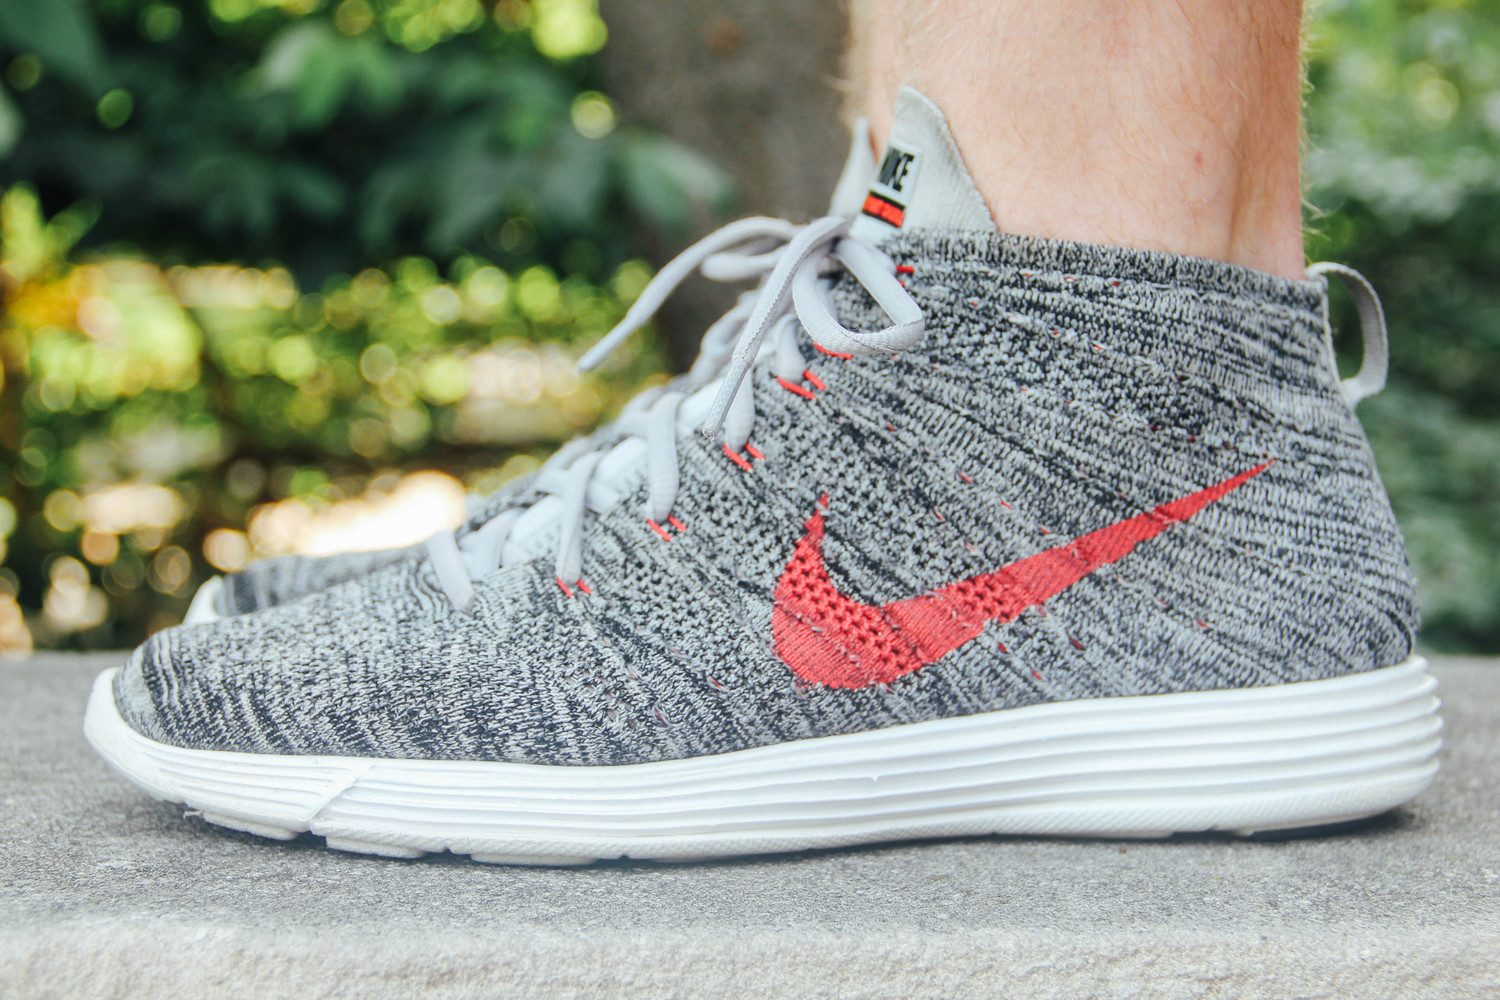 on sale 8b7c1 45a90 Shoe Review Nike Lunar Flyknit Chukka